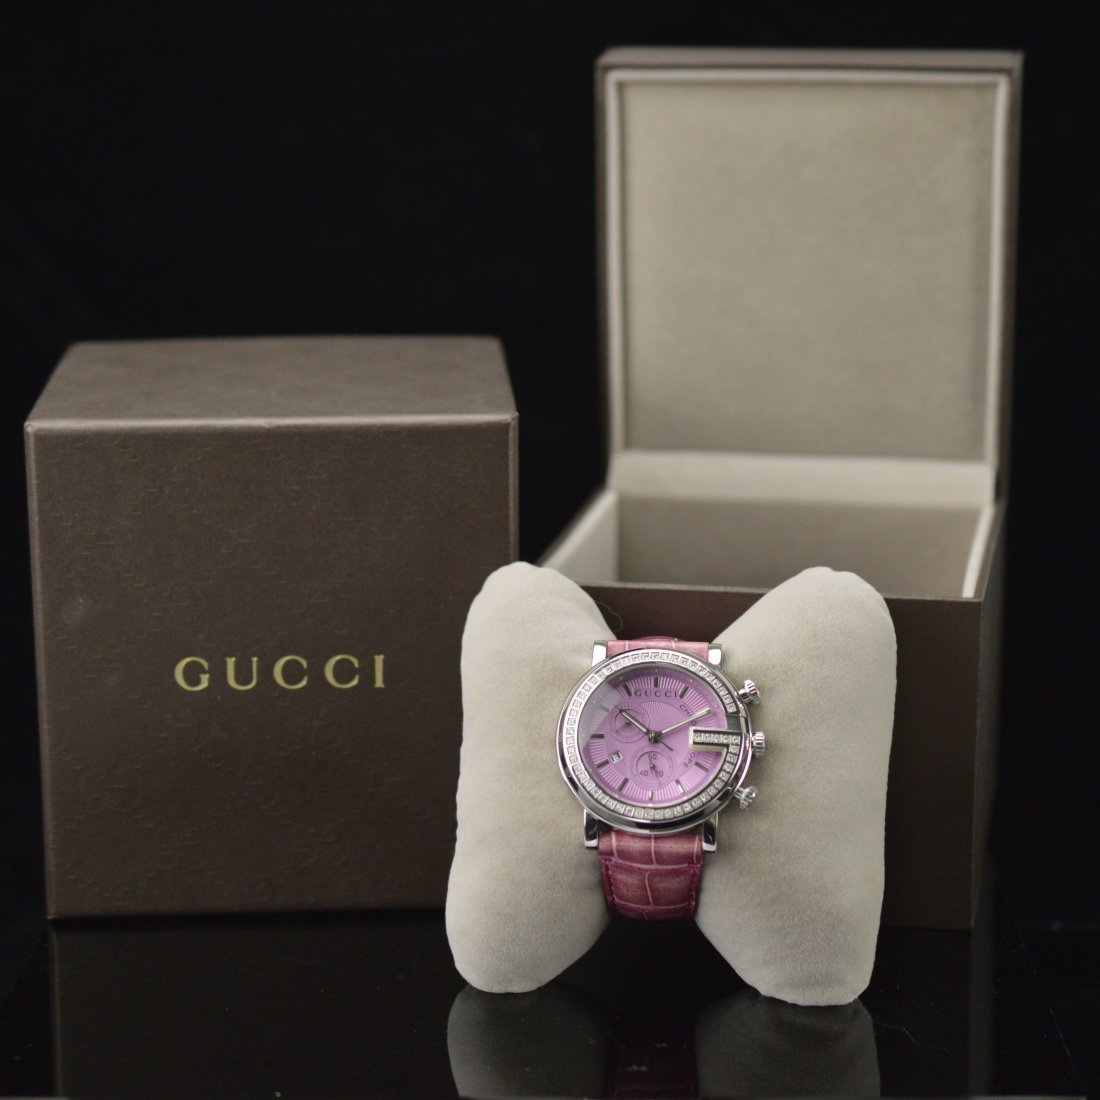 Gucci G-Chrono Pink Crocodile Leather Women's Watch